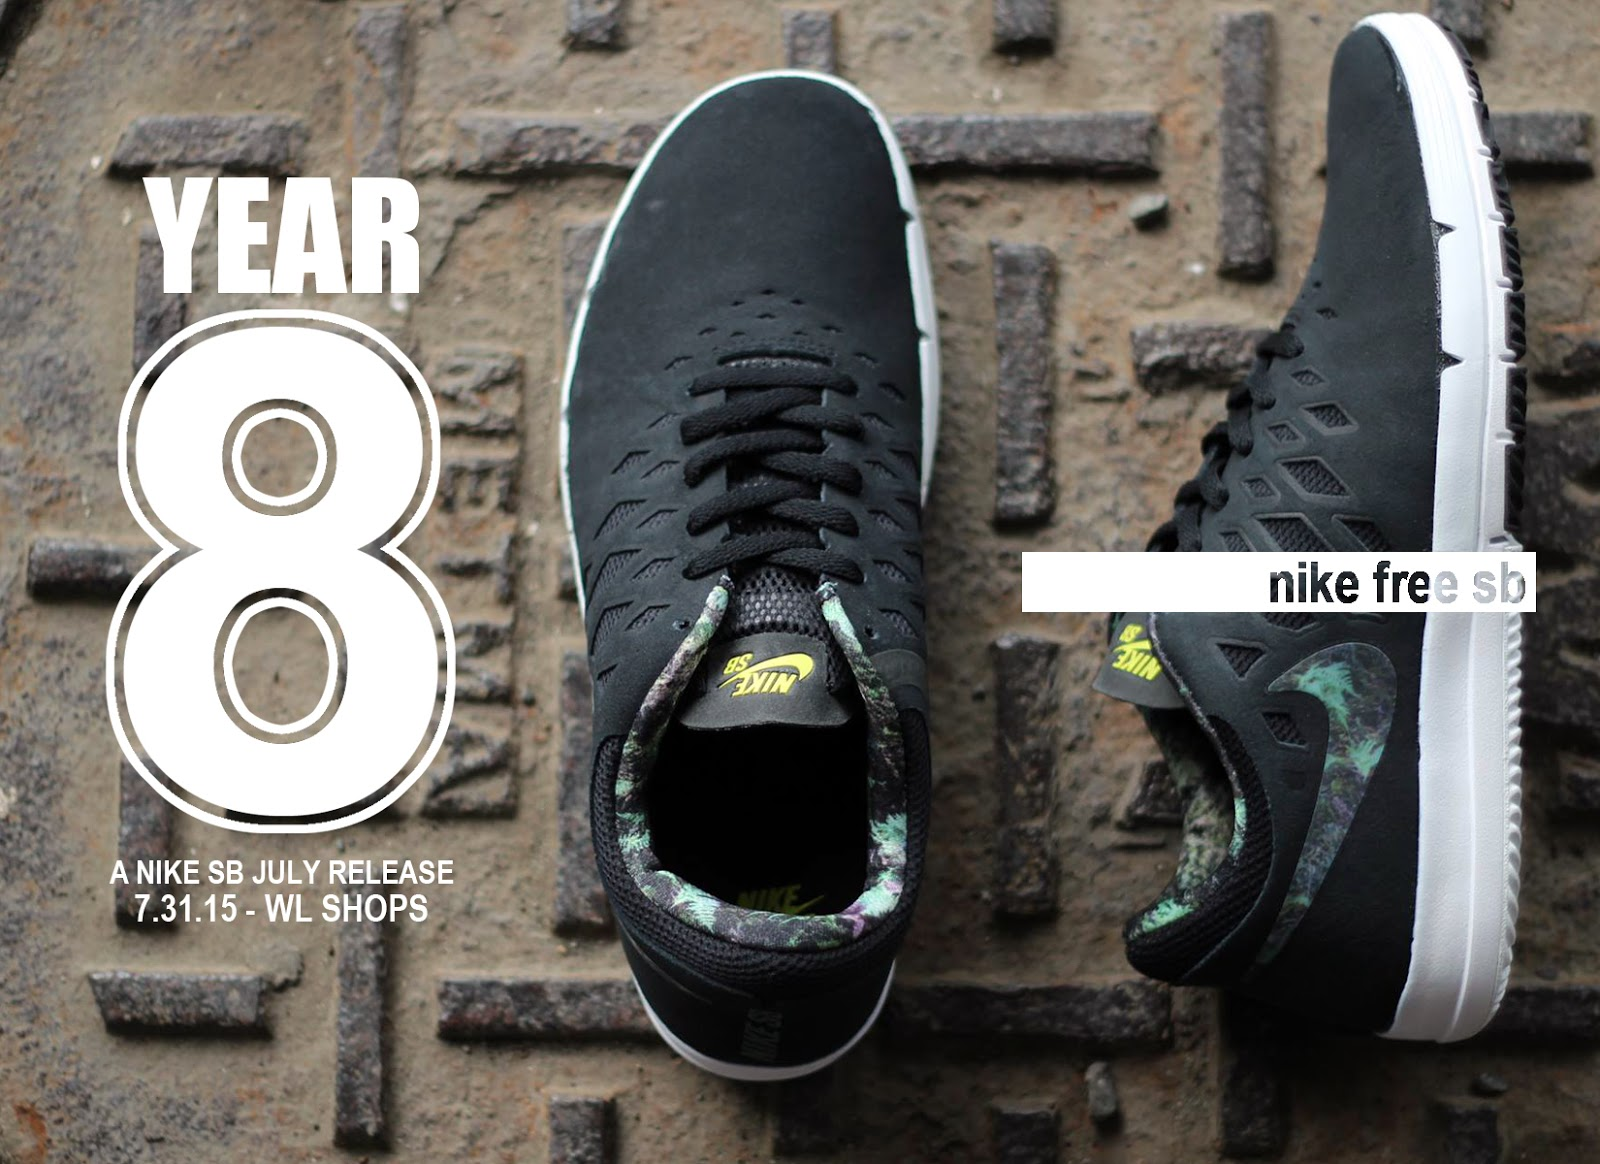 nike sb free black/gorge green/white